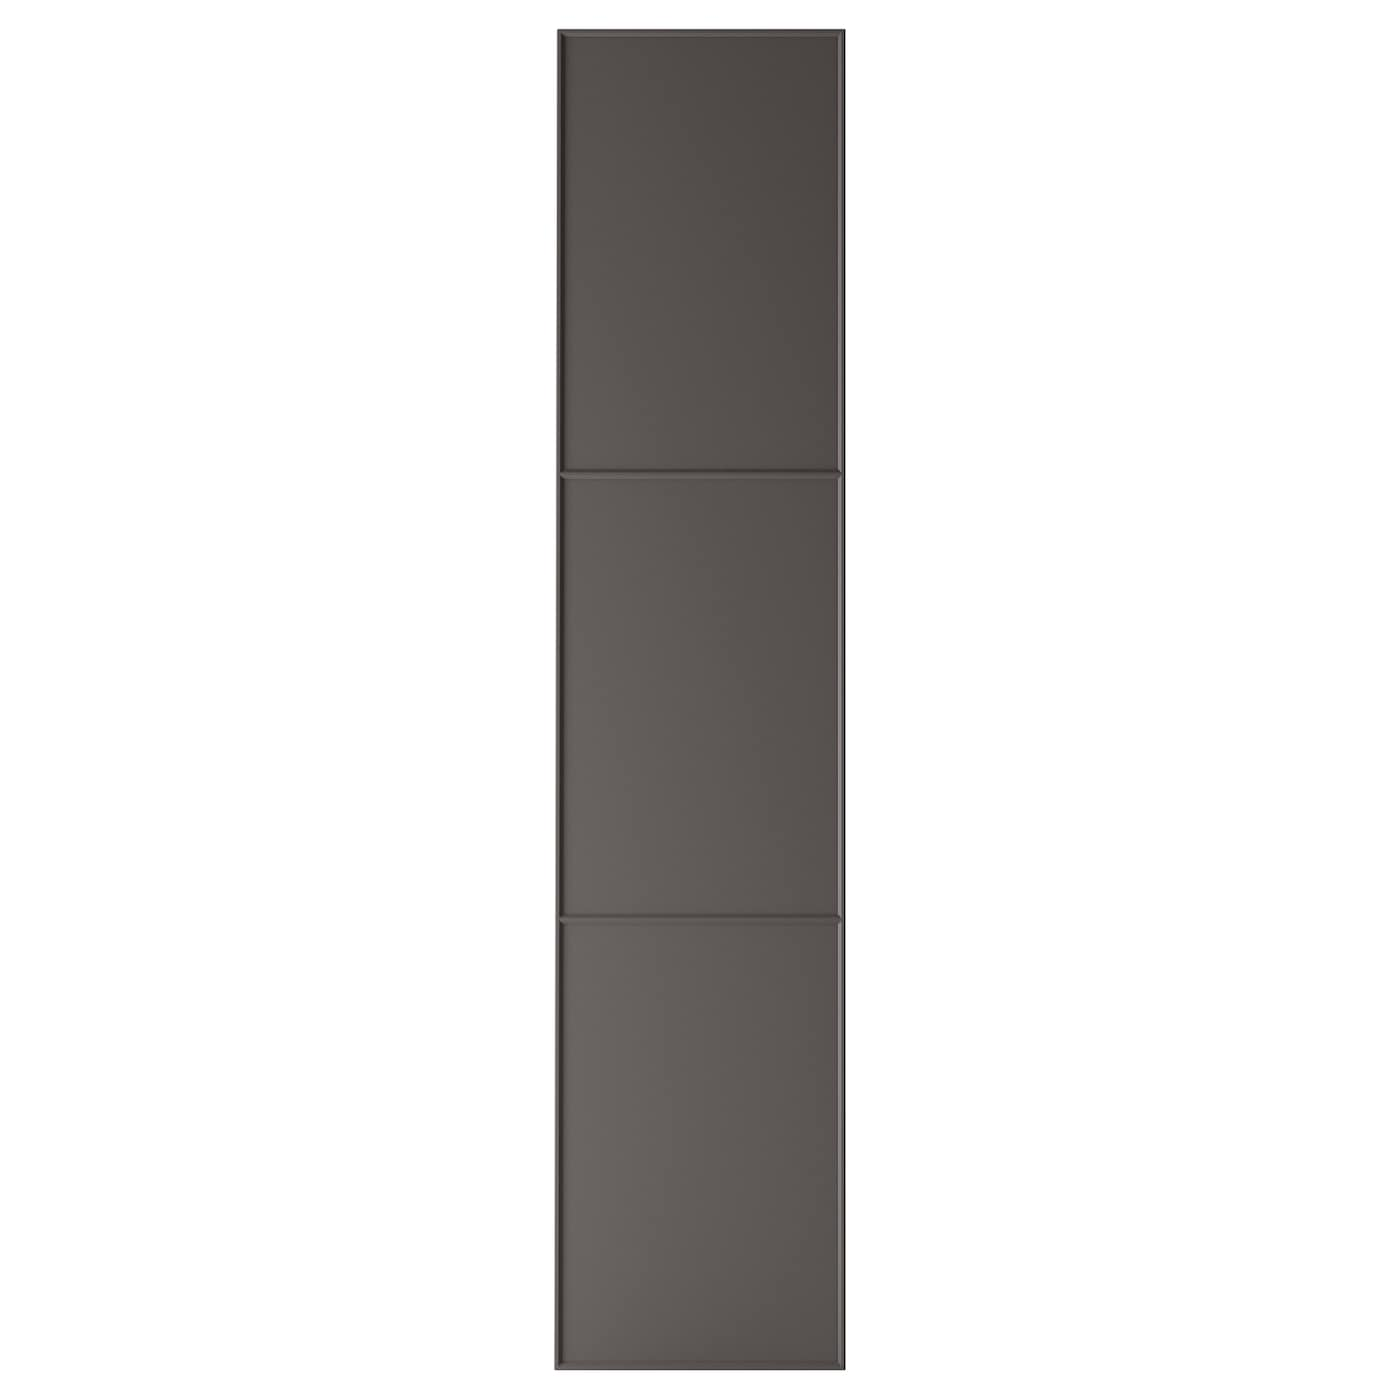 mer ker porte avec charni res gris fonc 50x229 cm ikea. Black Bedroom Furniture Sets. Home Design Ideas